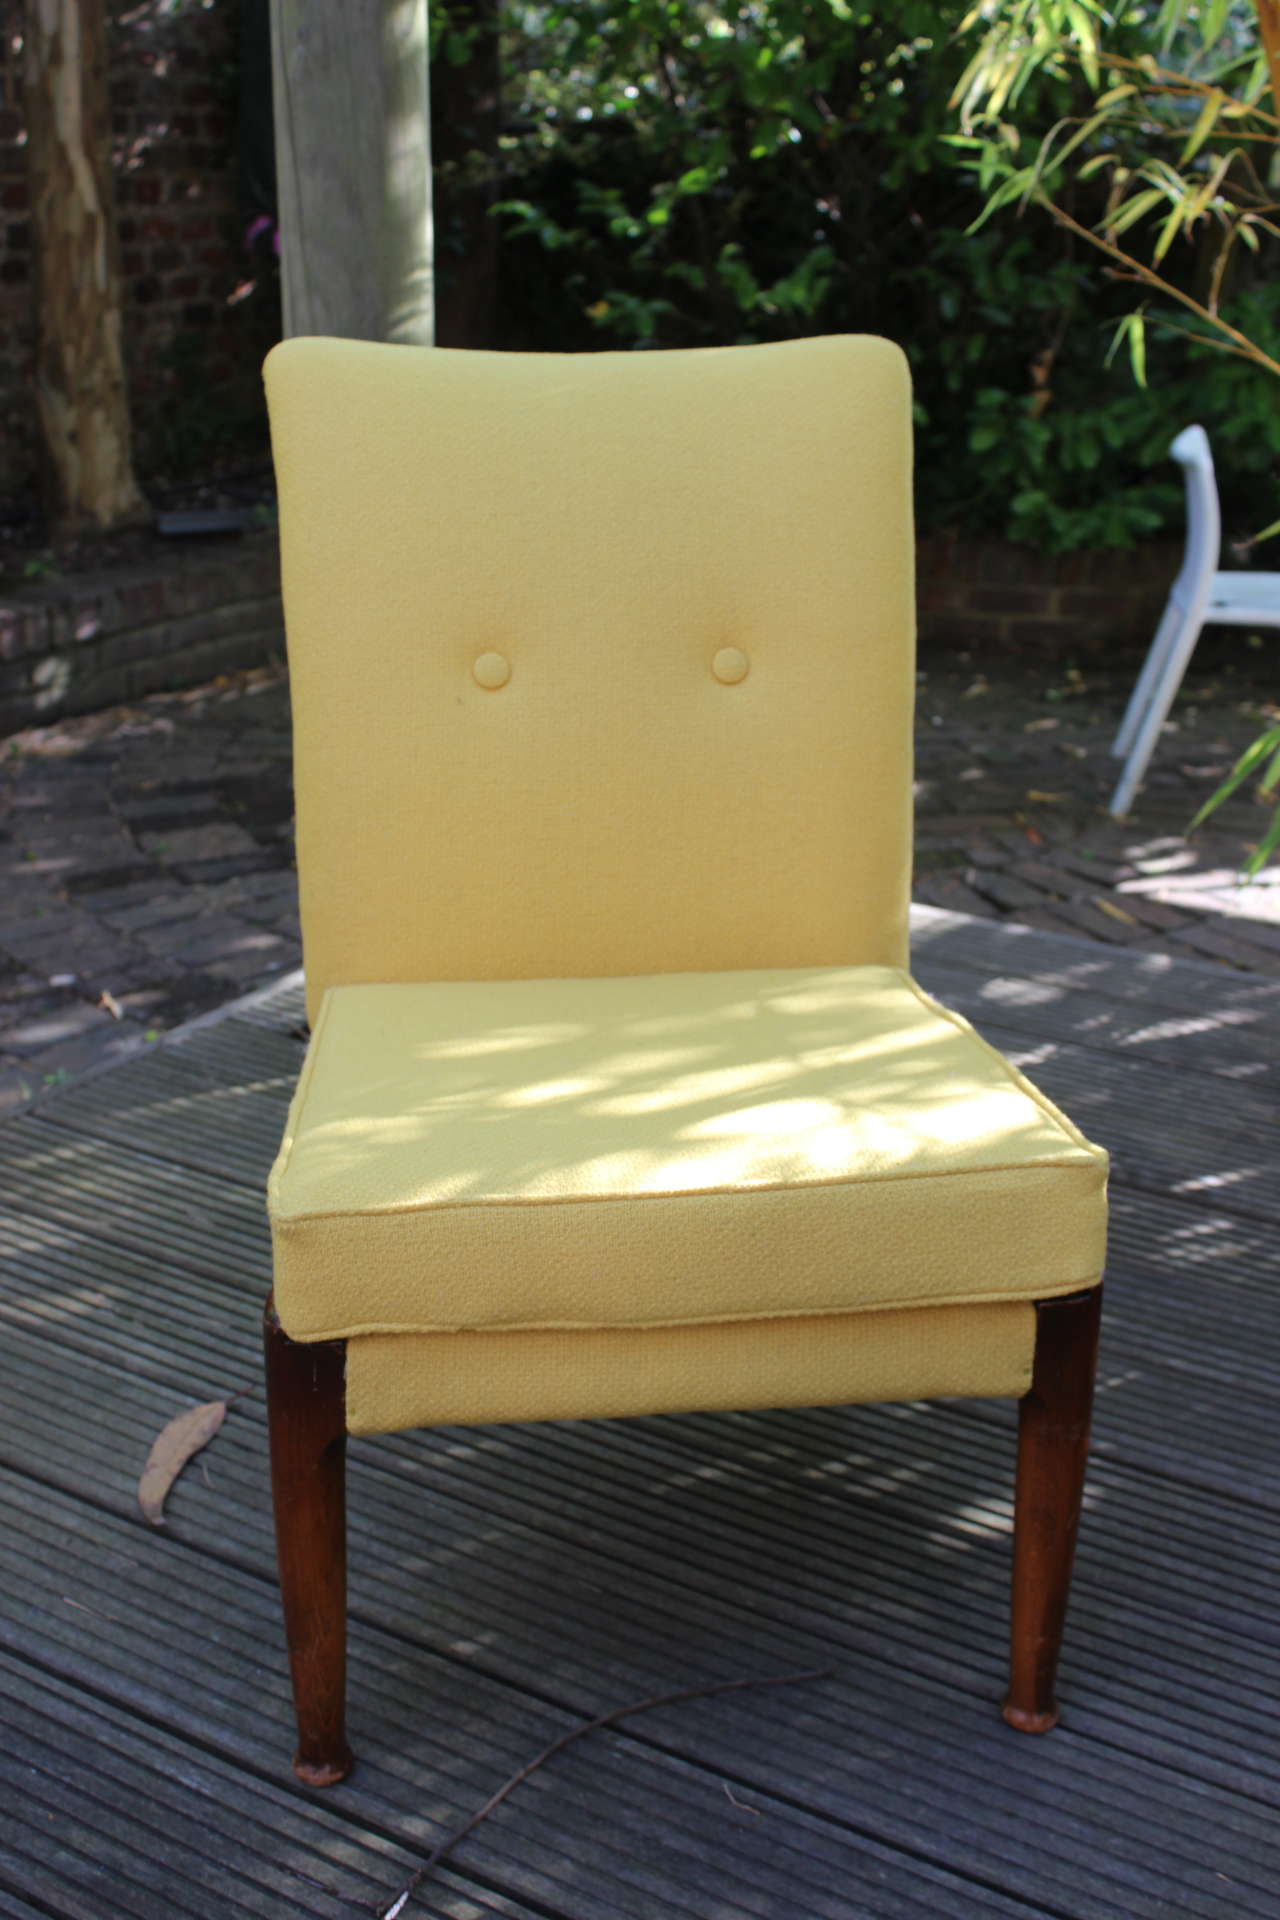 My 102 year old man's chair completed